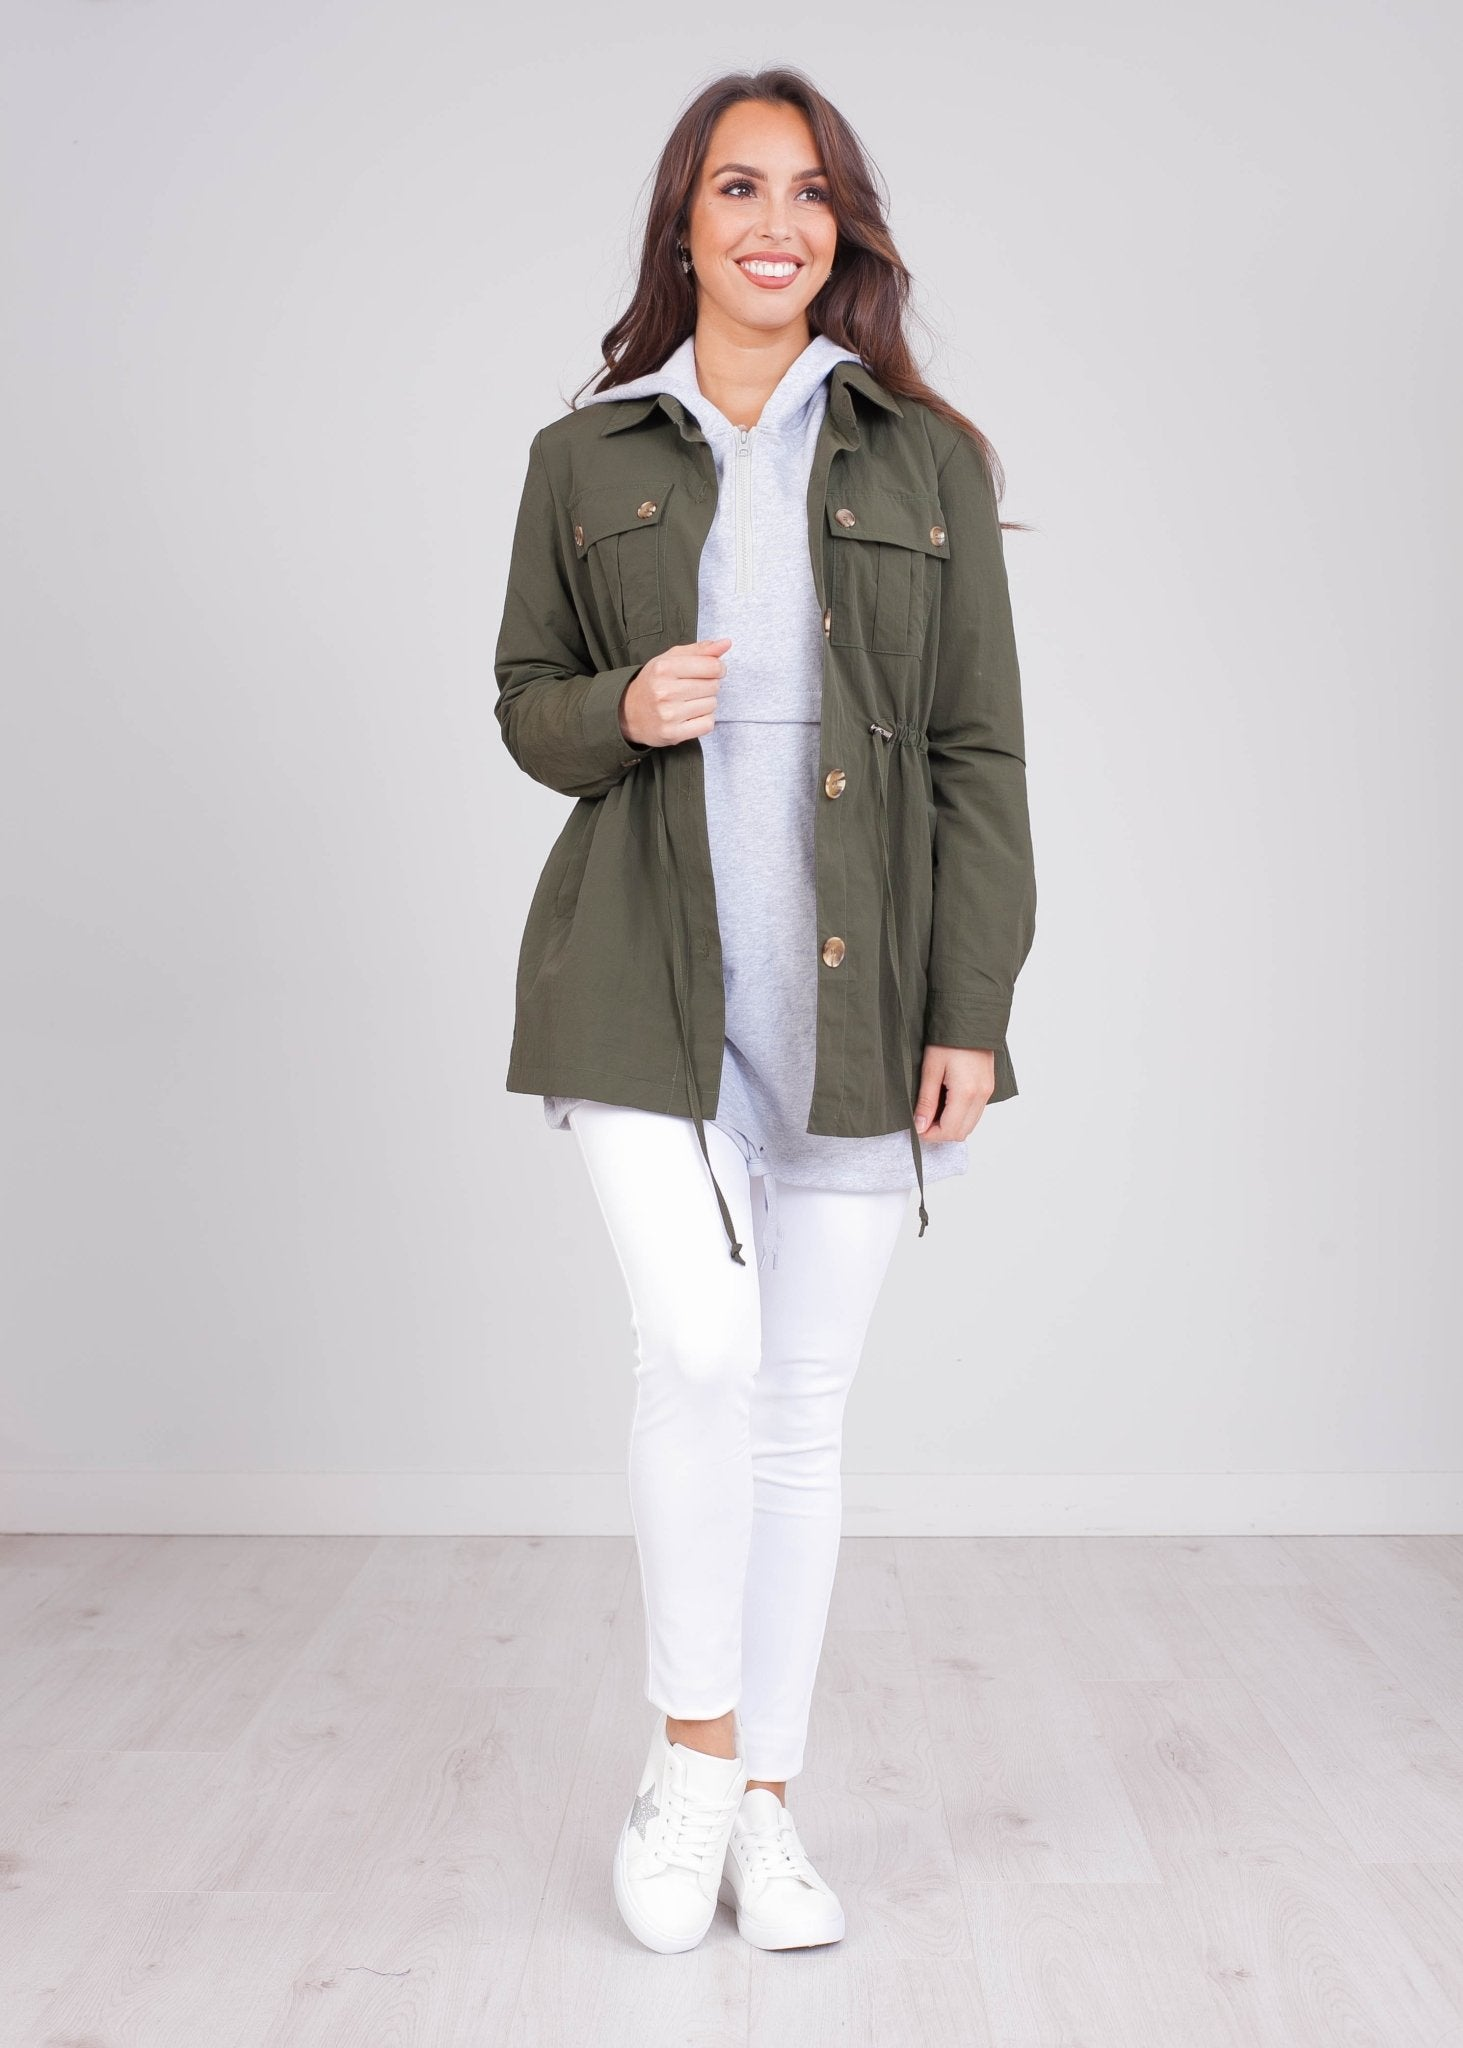 Emilia Khaki Utility Jacket - The Walk in Wardrobe